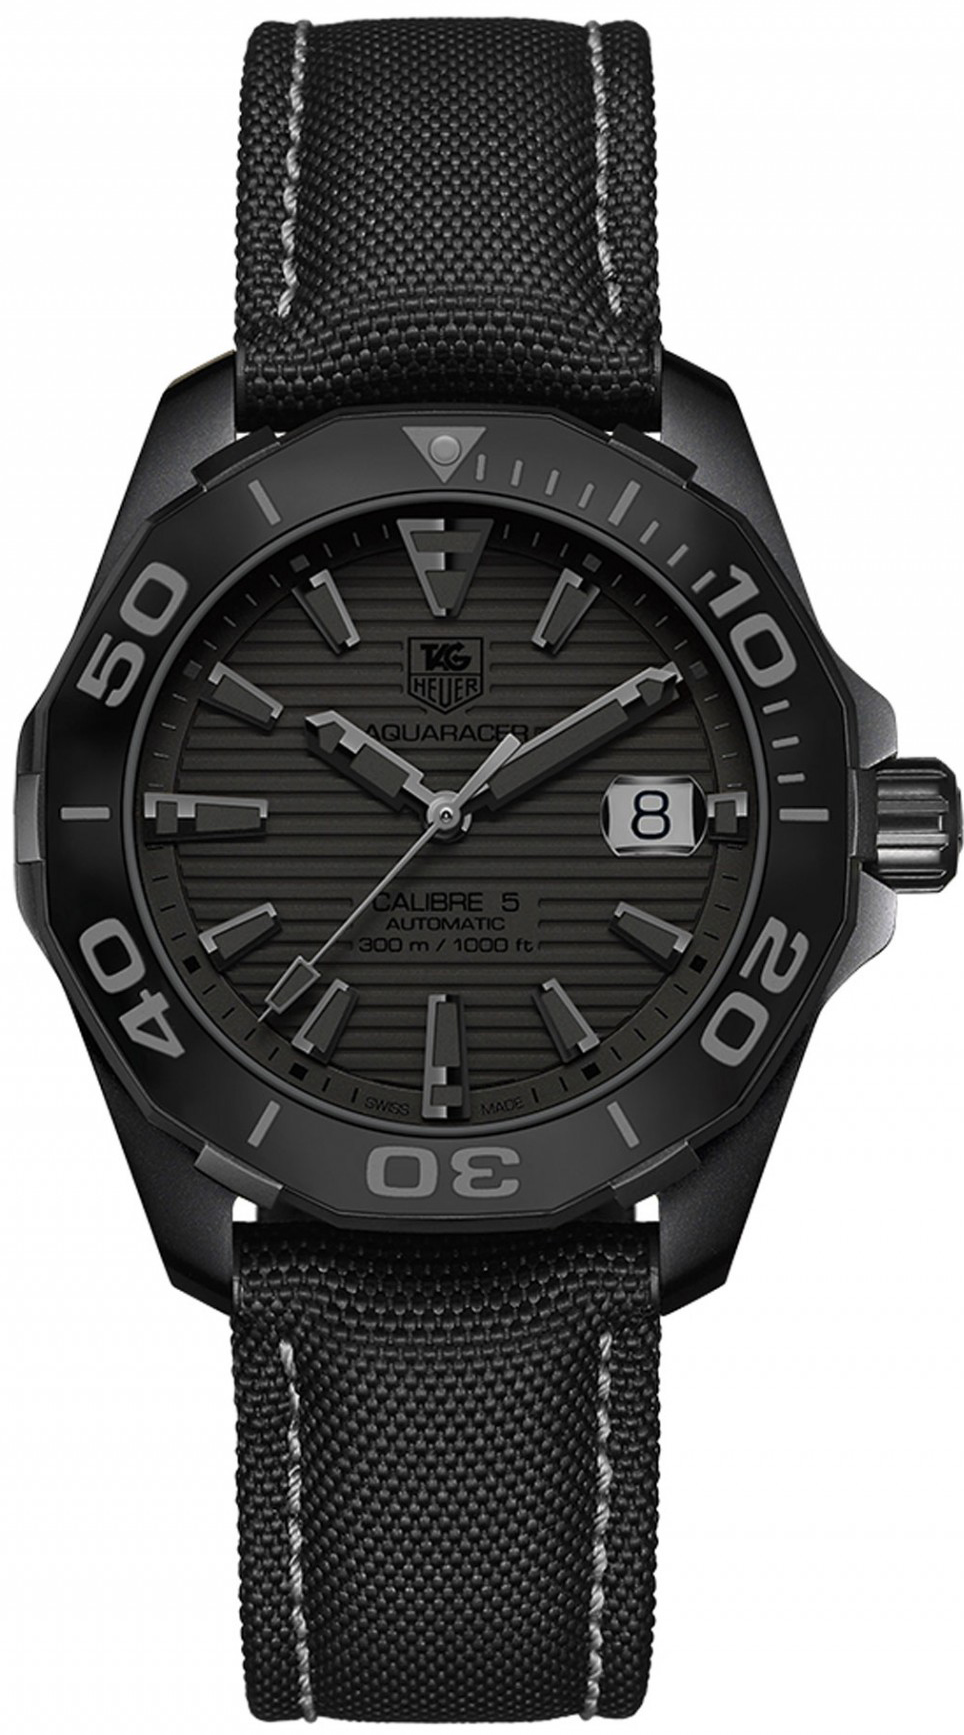 Way218b fc6364 tag heuer aquaracer 300m automatic 41mm limited edition mens water resistant for Tag heuer aquaracer